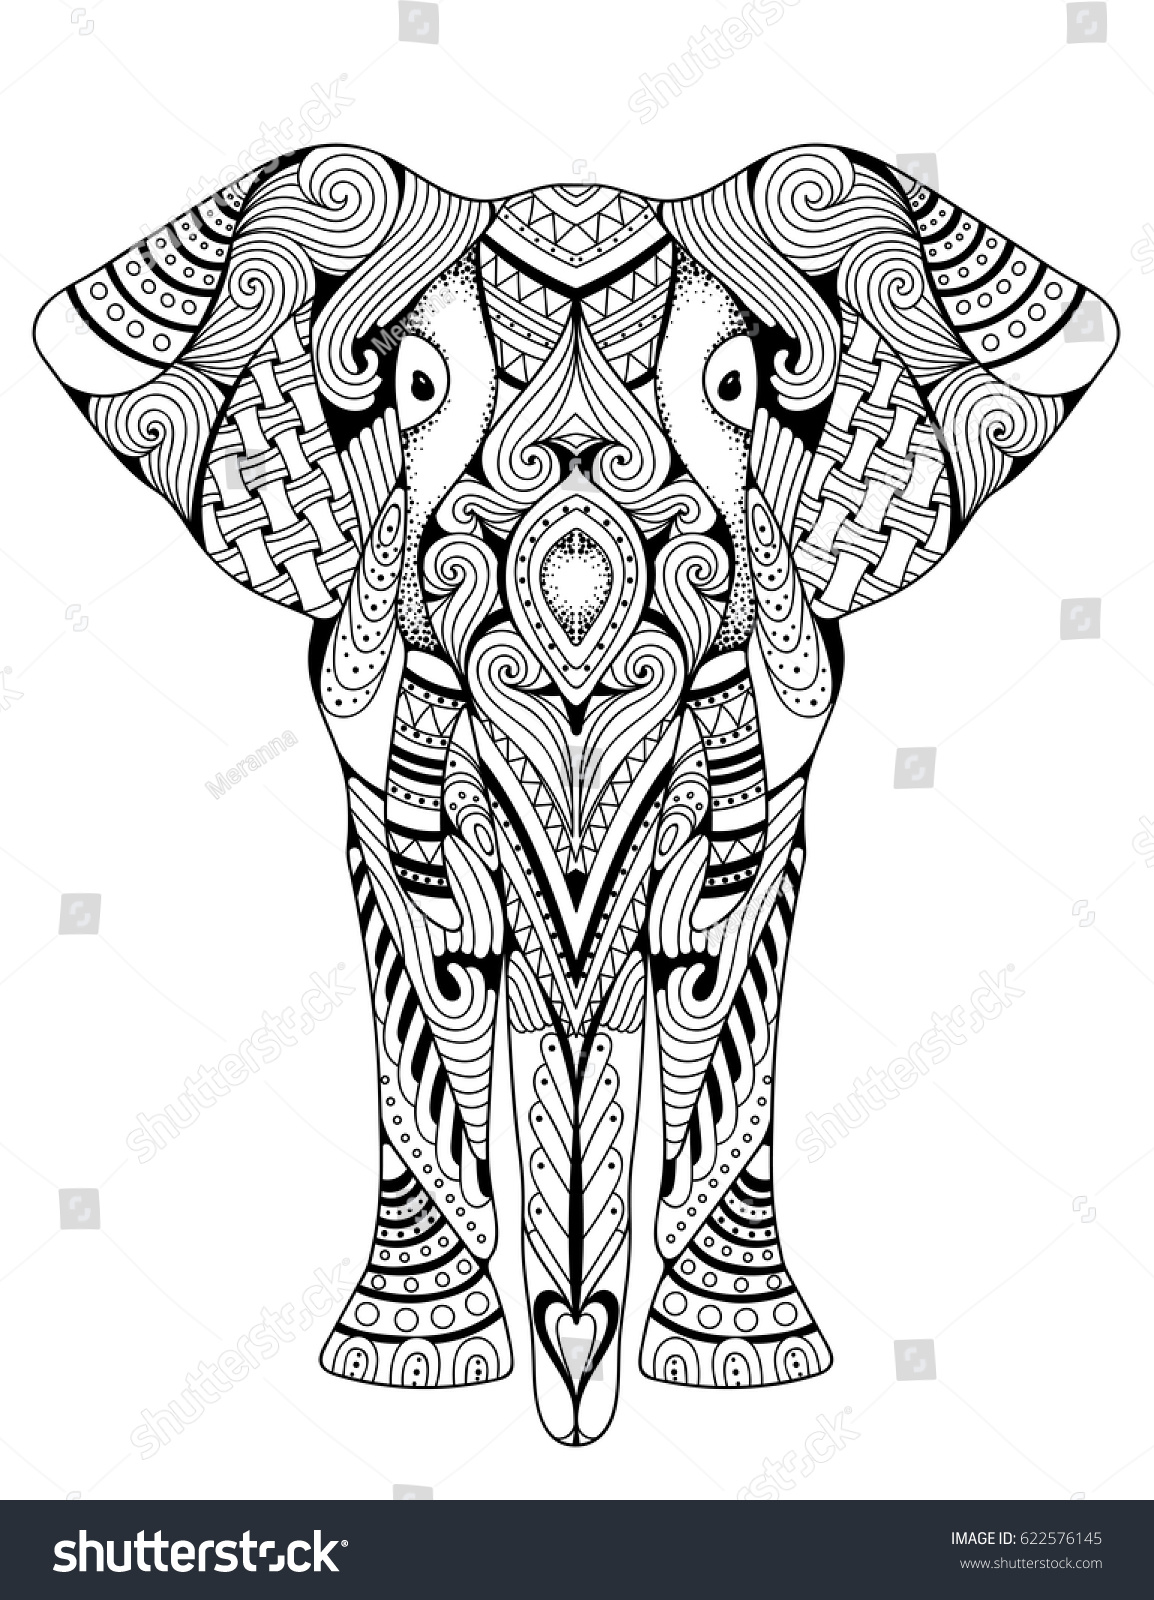 Elephant Coloring Book Adults Vector Illustration Stock Vector ...